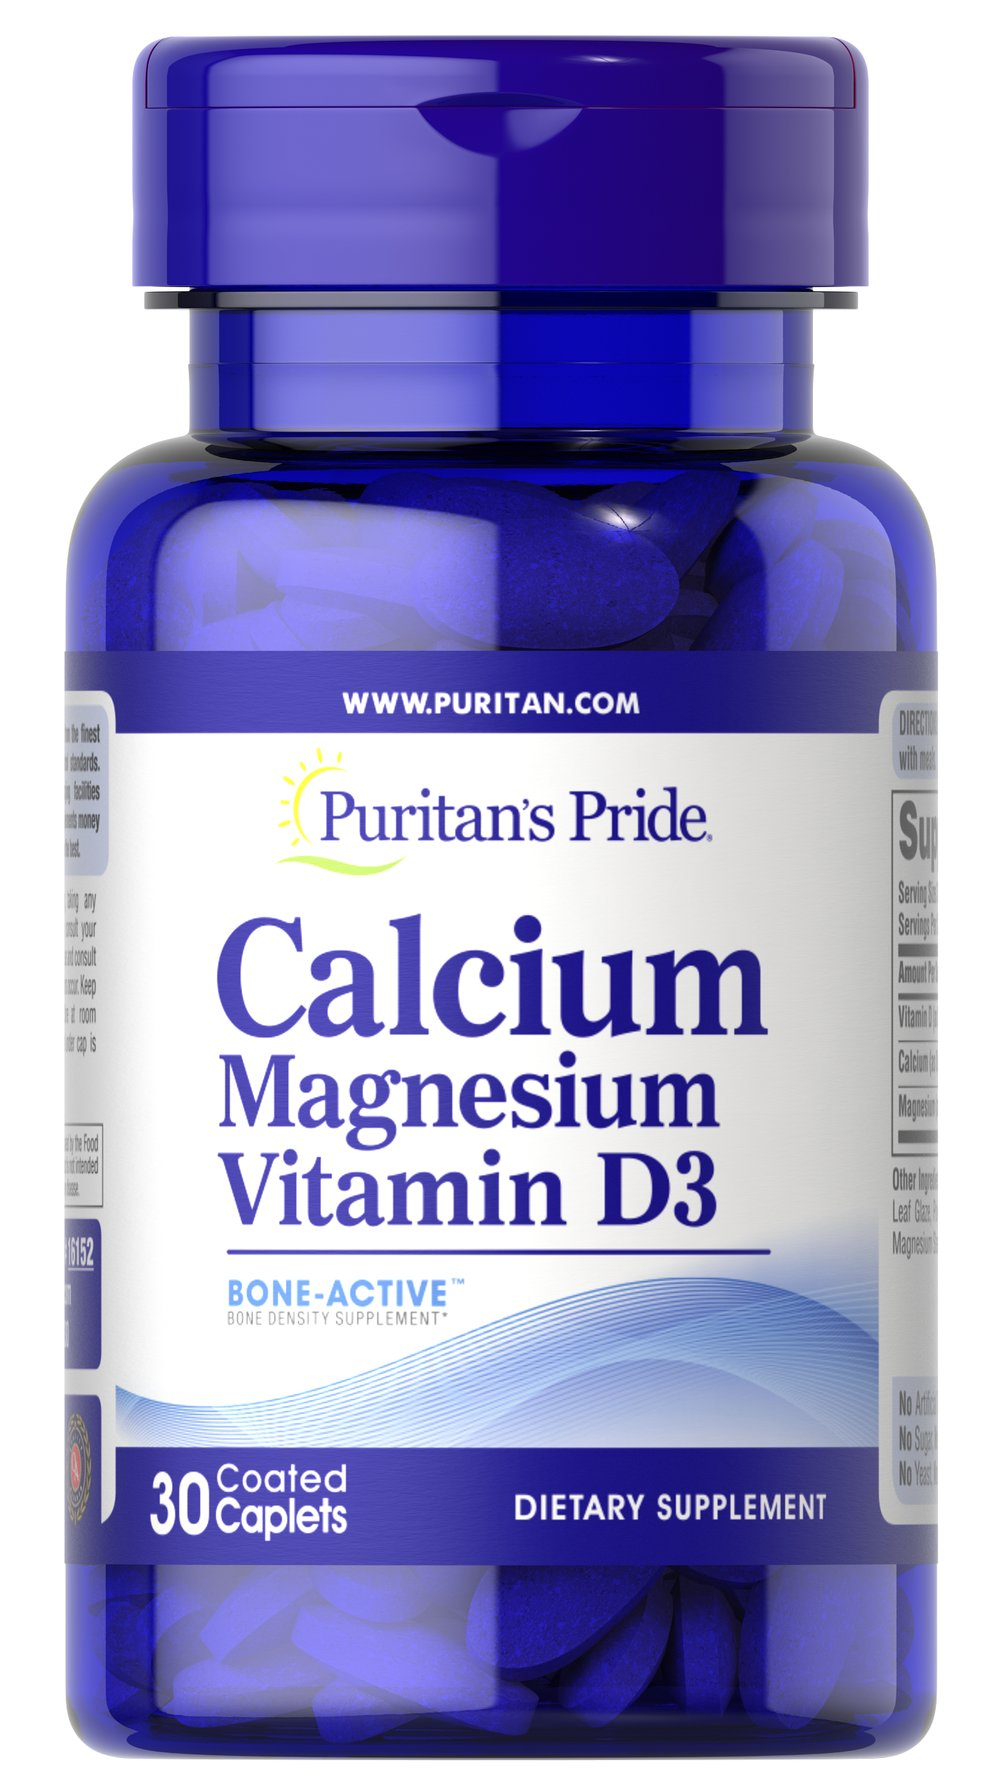 "Calcium Magnesium with Vitamin D <p>Give your bones a sample of one of the best combinations in <a href=""/bone-health-241?searchterm=bone%20health&rdcnt=1"">bone health</a> .*</p><p><span></span>Calcium, Magnesium, and Vitamin D are essential for strong bones, plus this formula helps support a healthy immune system, colon health, and more.* </p> 30 Caplets  $1.39"